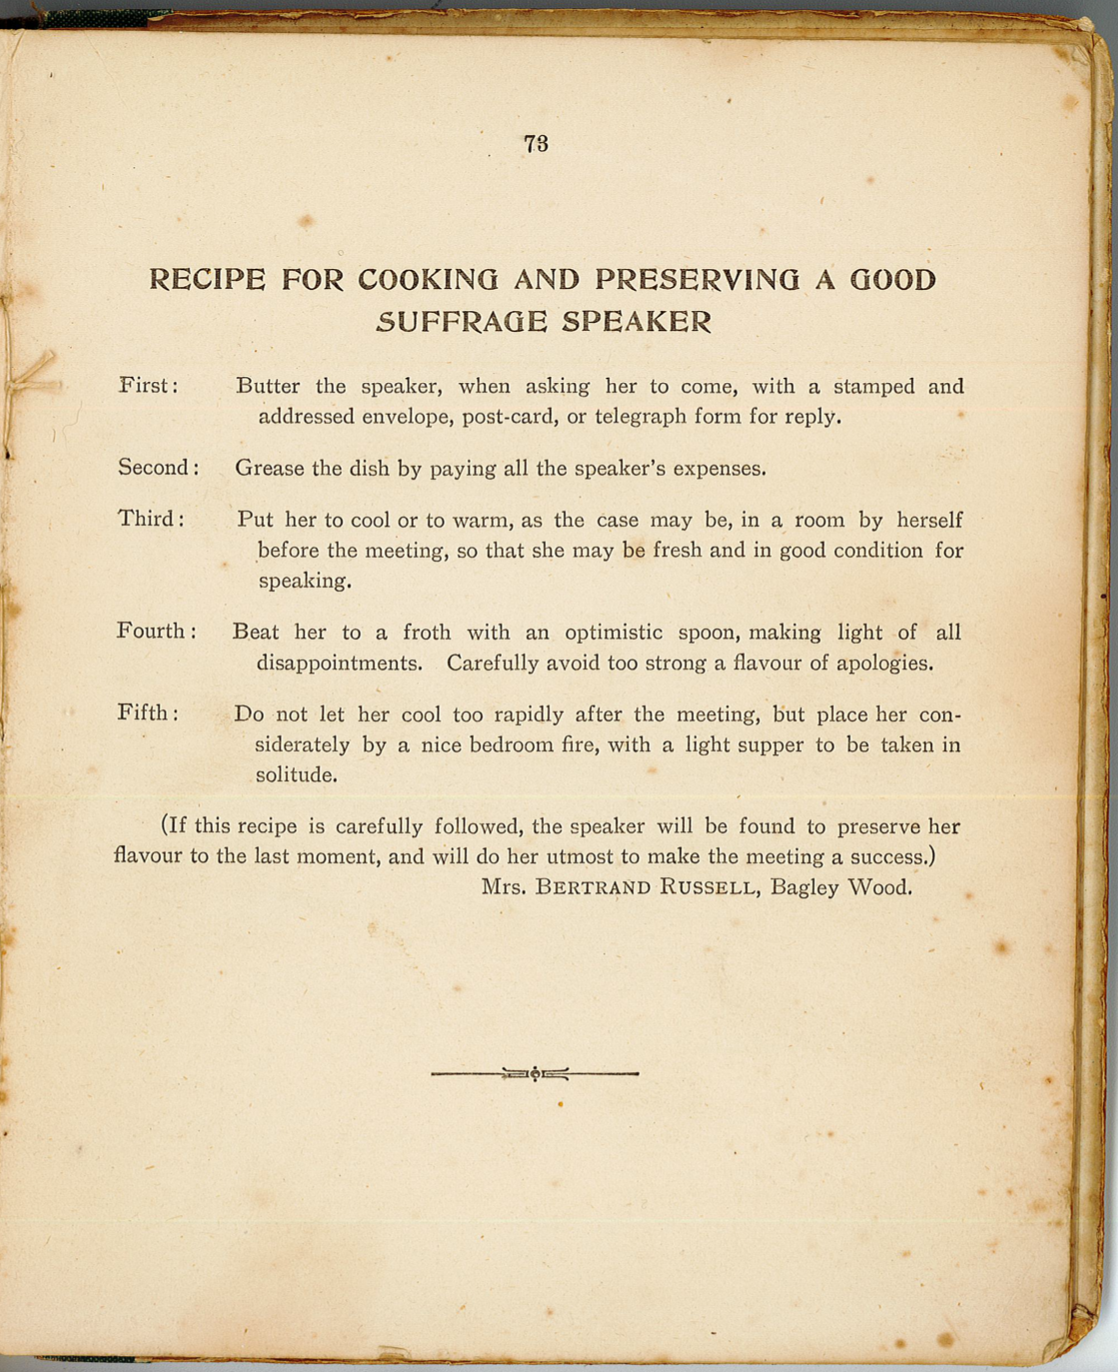 Recipe for Cooking and Preserving a Good Suffrage Speaker